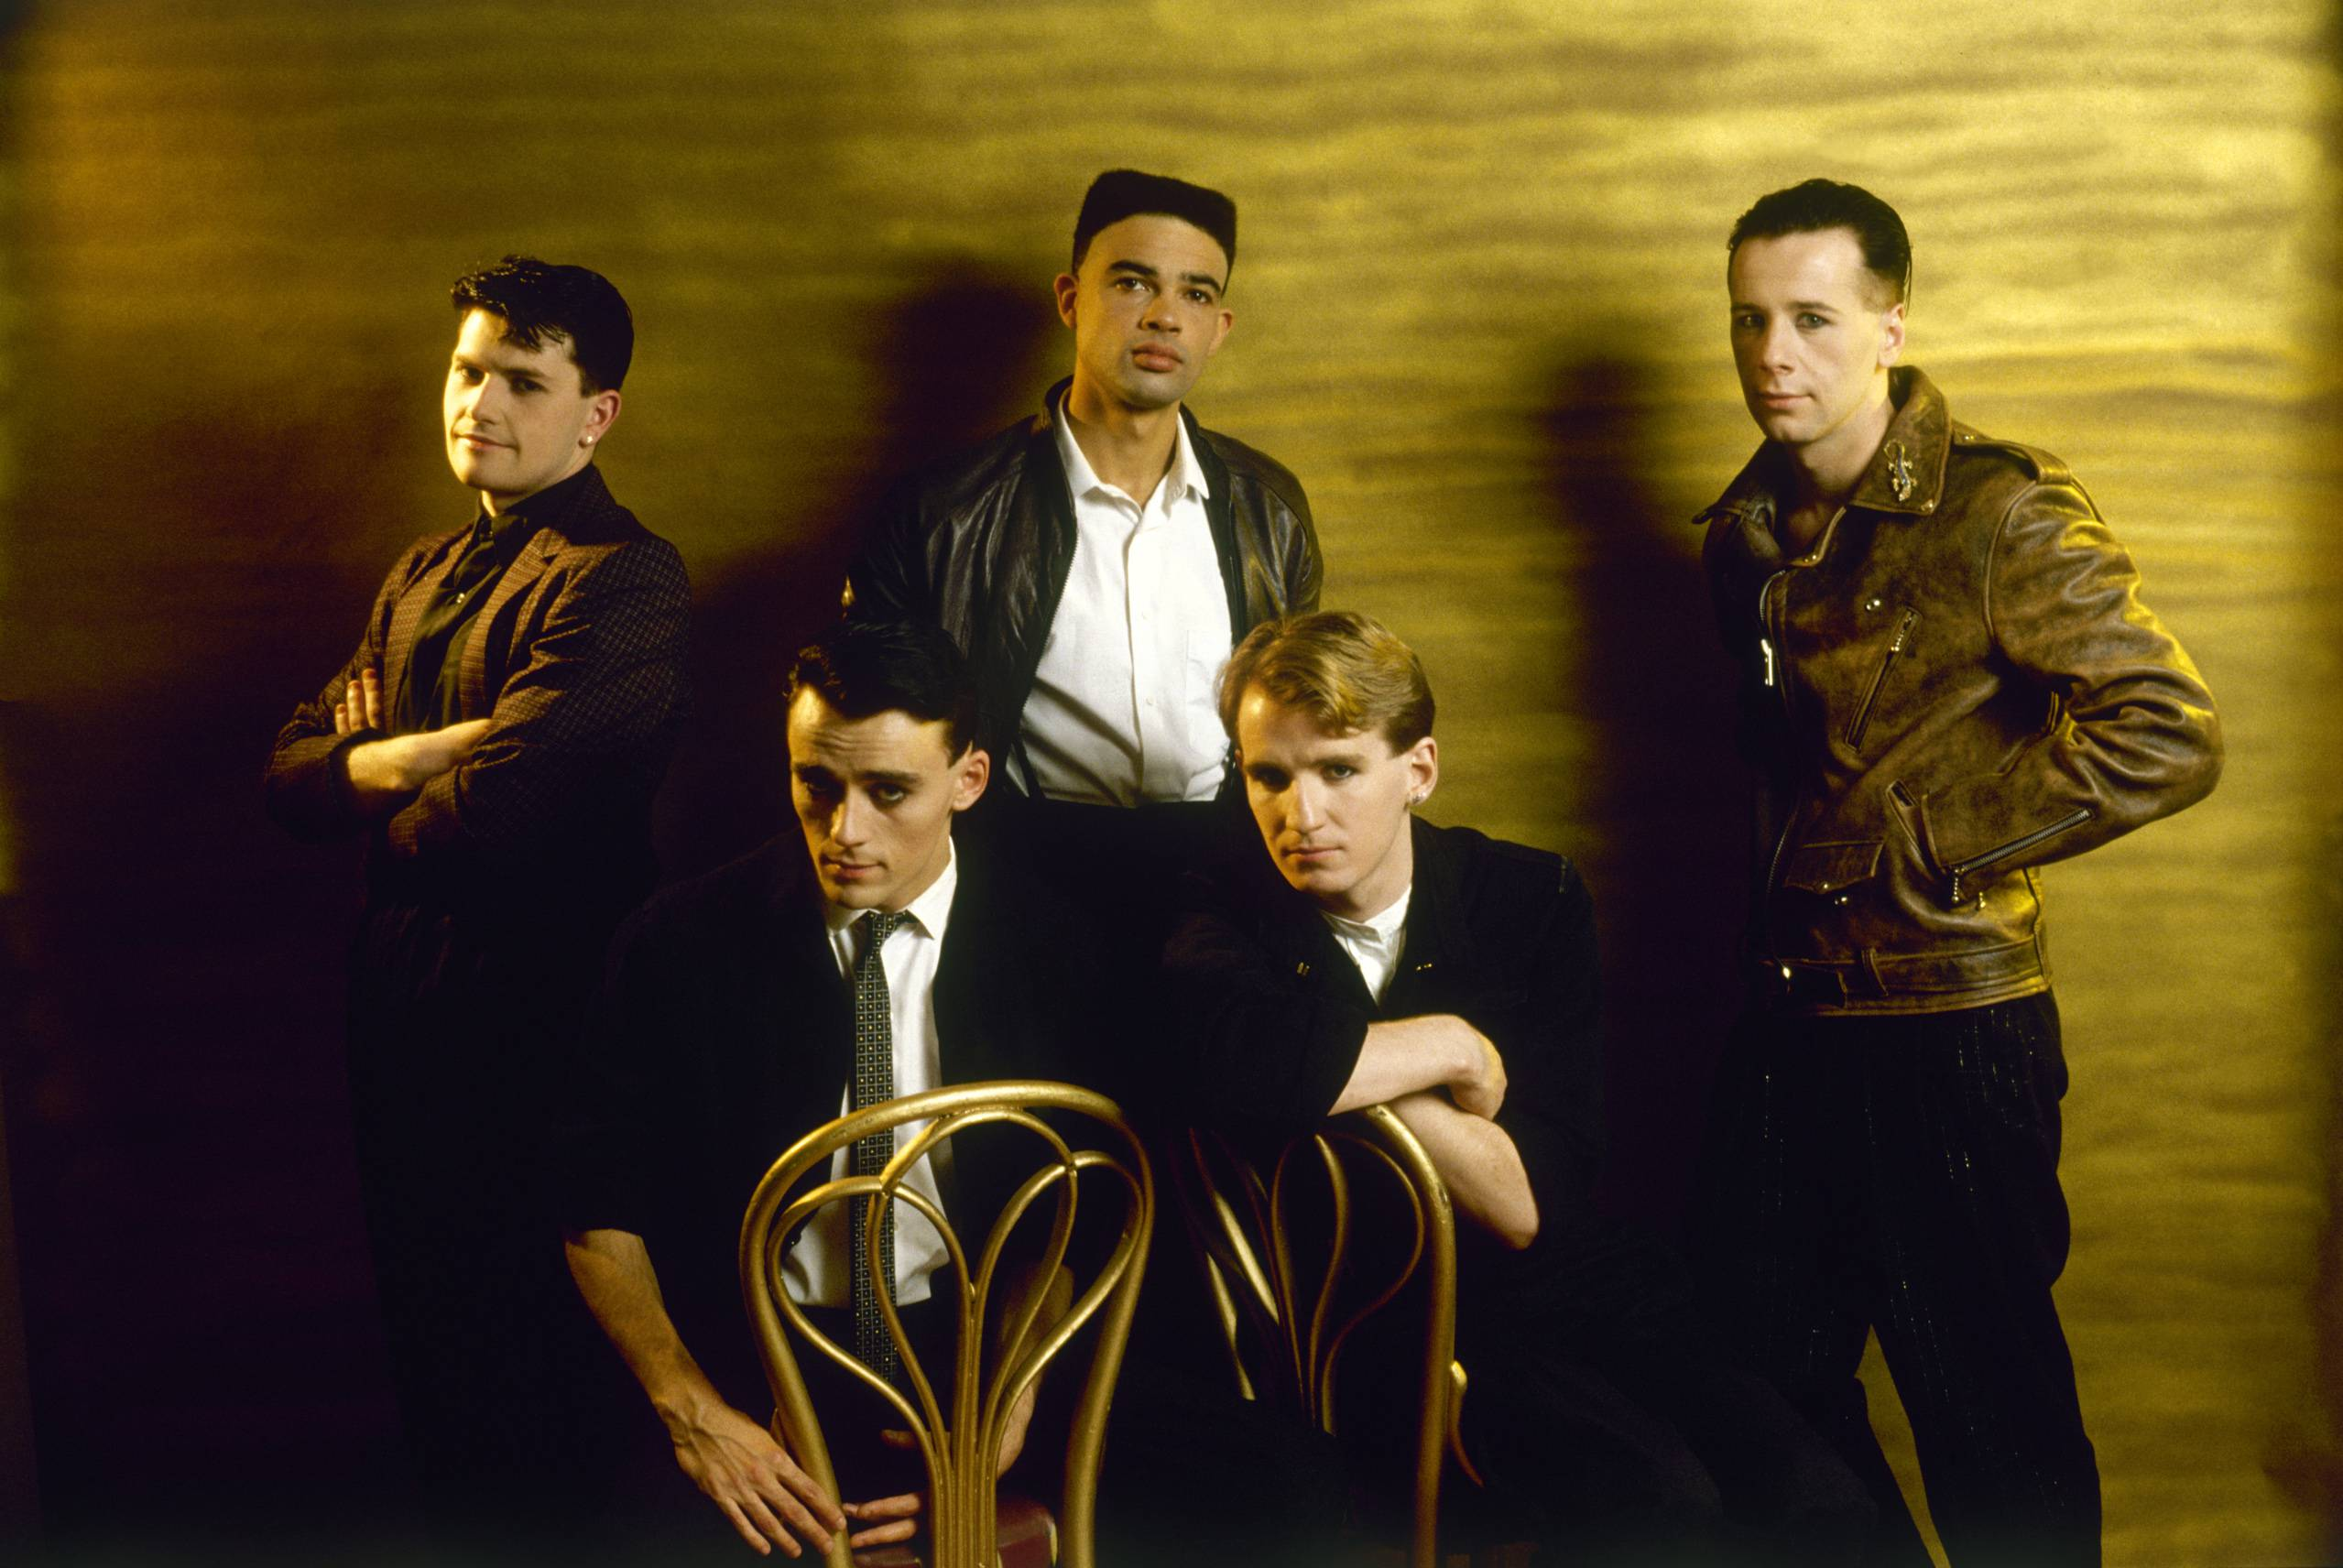 Simple Minds NGD-era photo - credit Sheila Rock